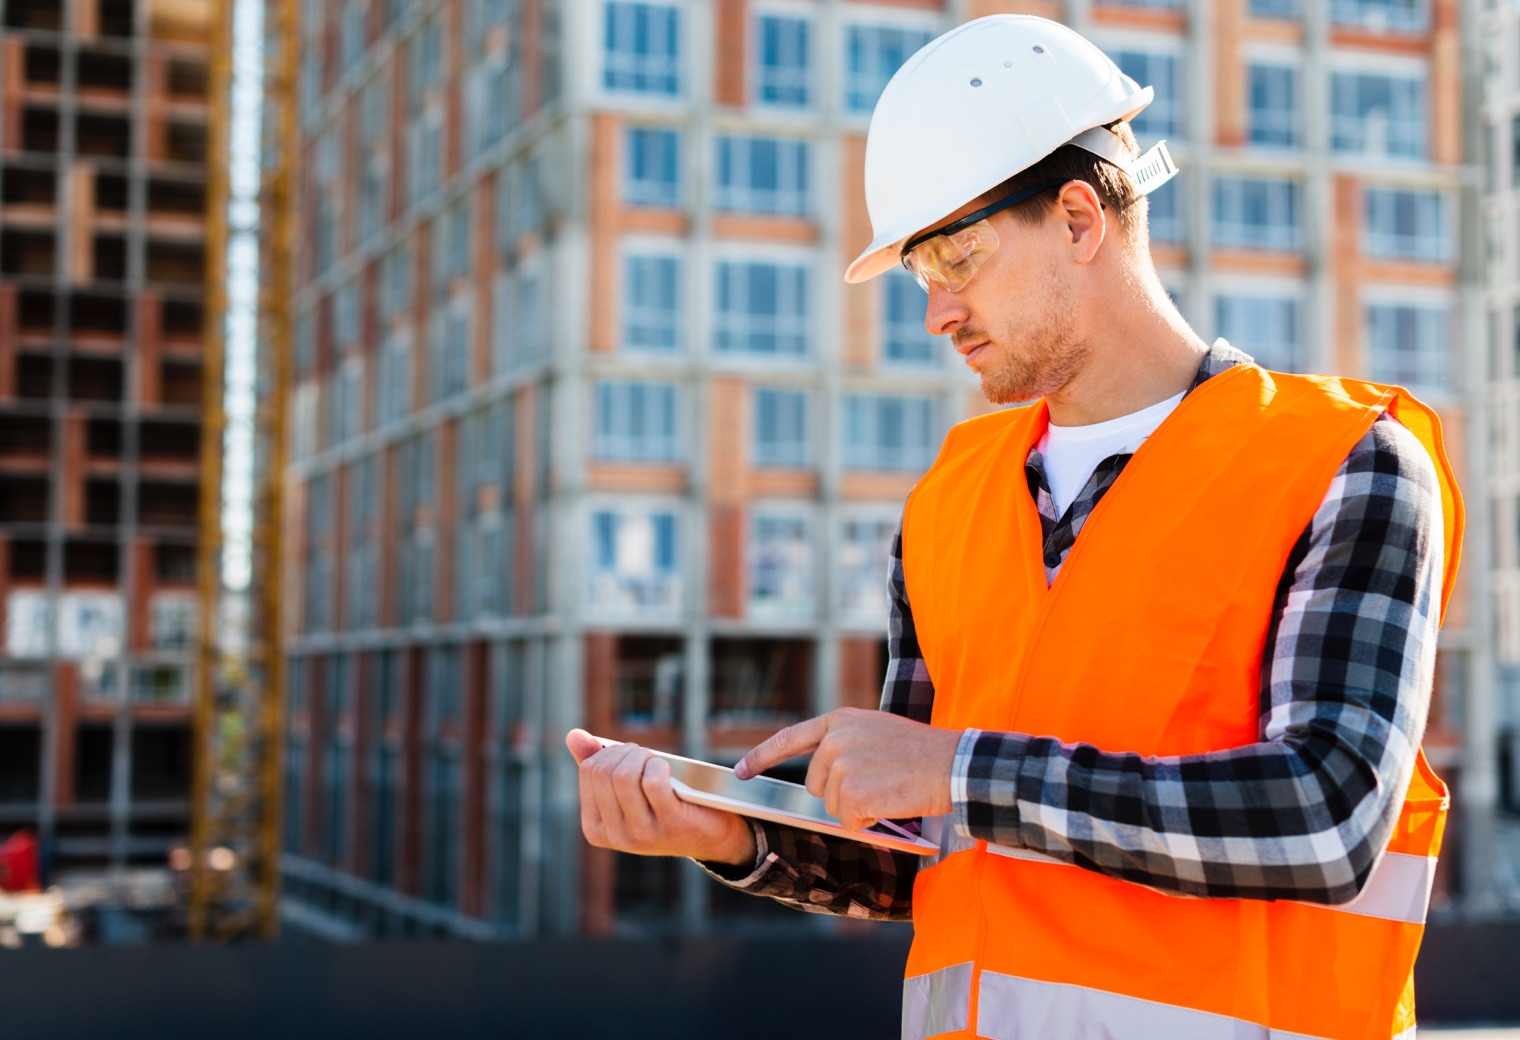 what are the responsibilities of a BIM Manager? Find out from Cloudalize.